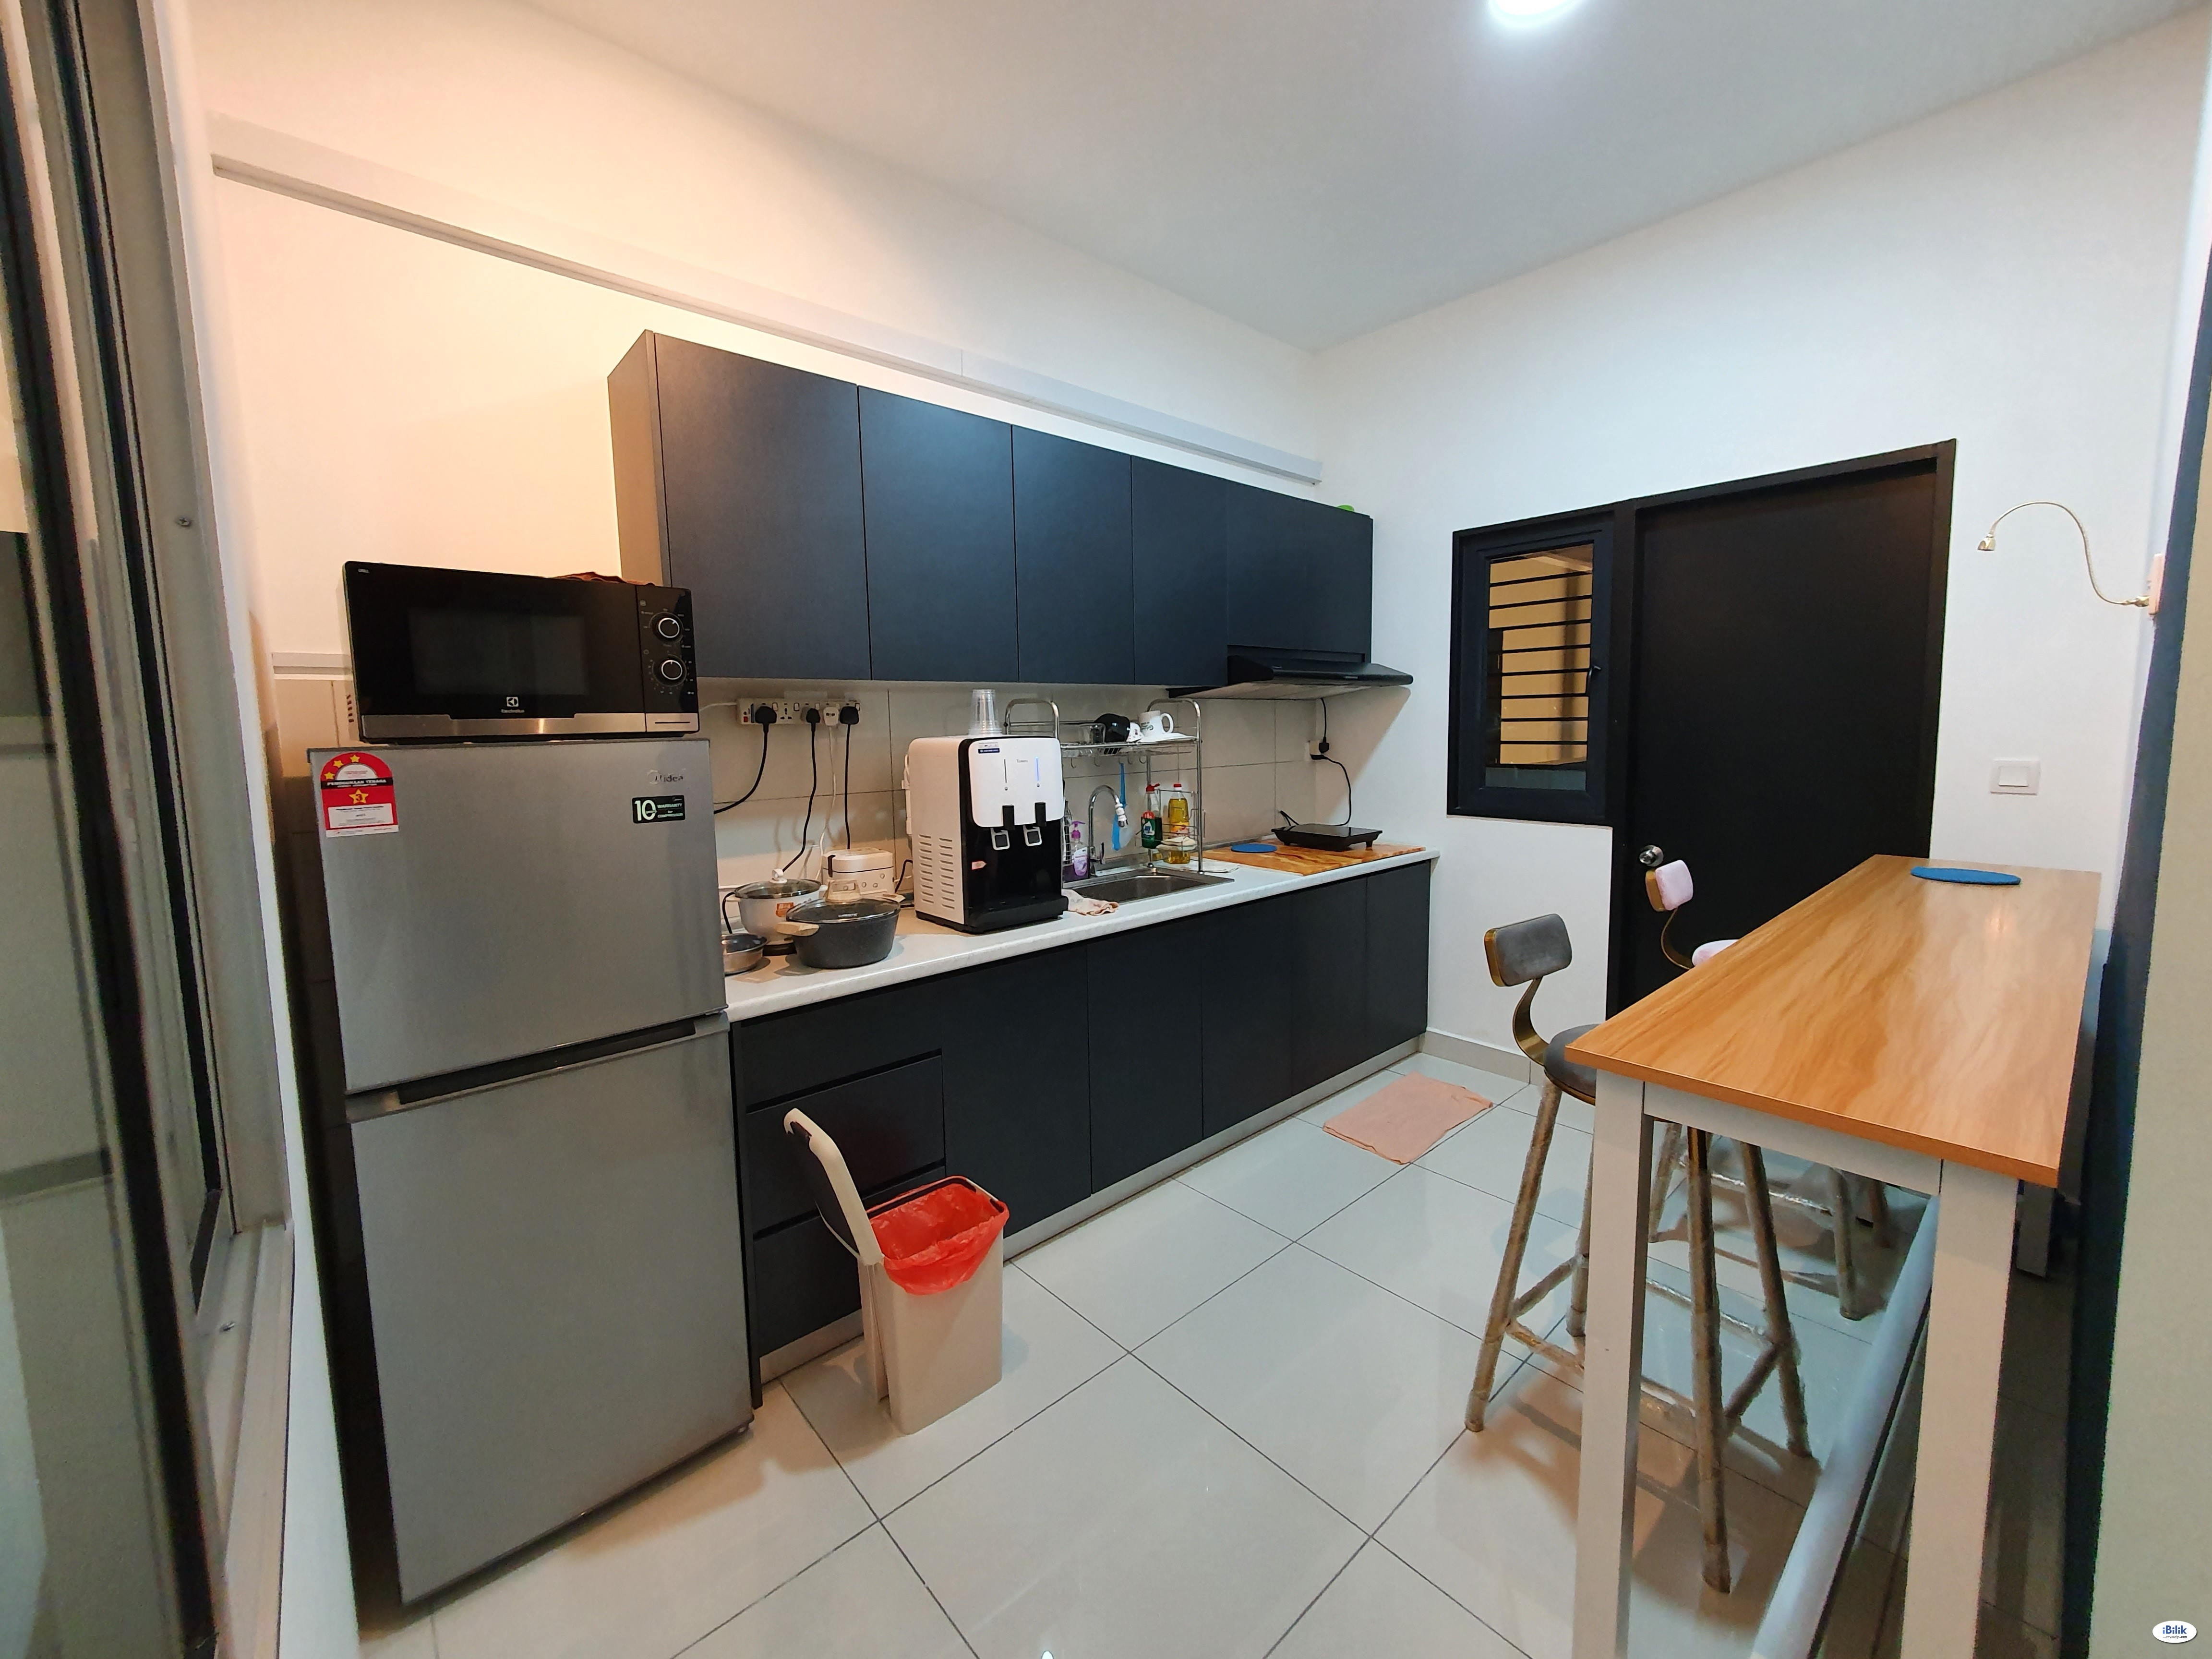 ✨ [Include ALL Utilities] Middle Room with Balcony at The Havre, Bukit Jalil with walking distance to Pavilion 2, Aurora Mall (Female preferable)